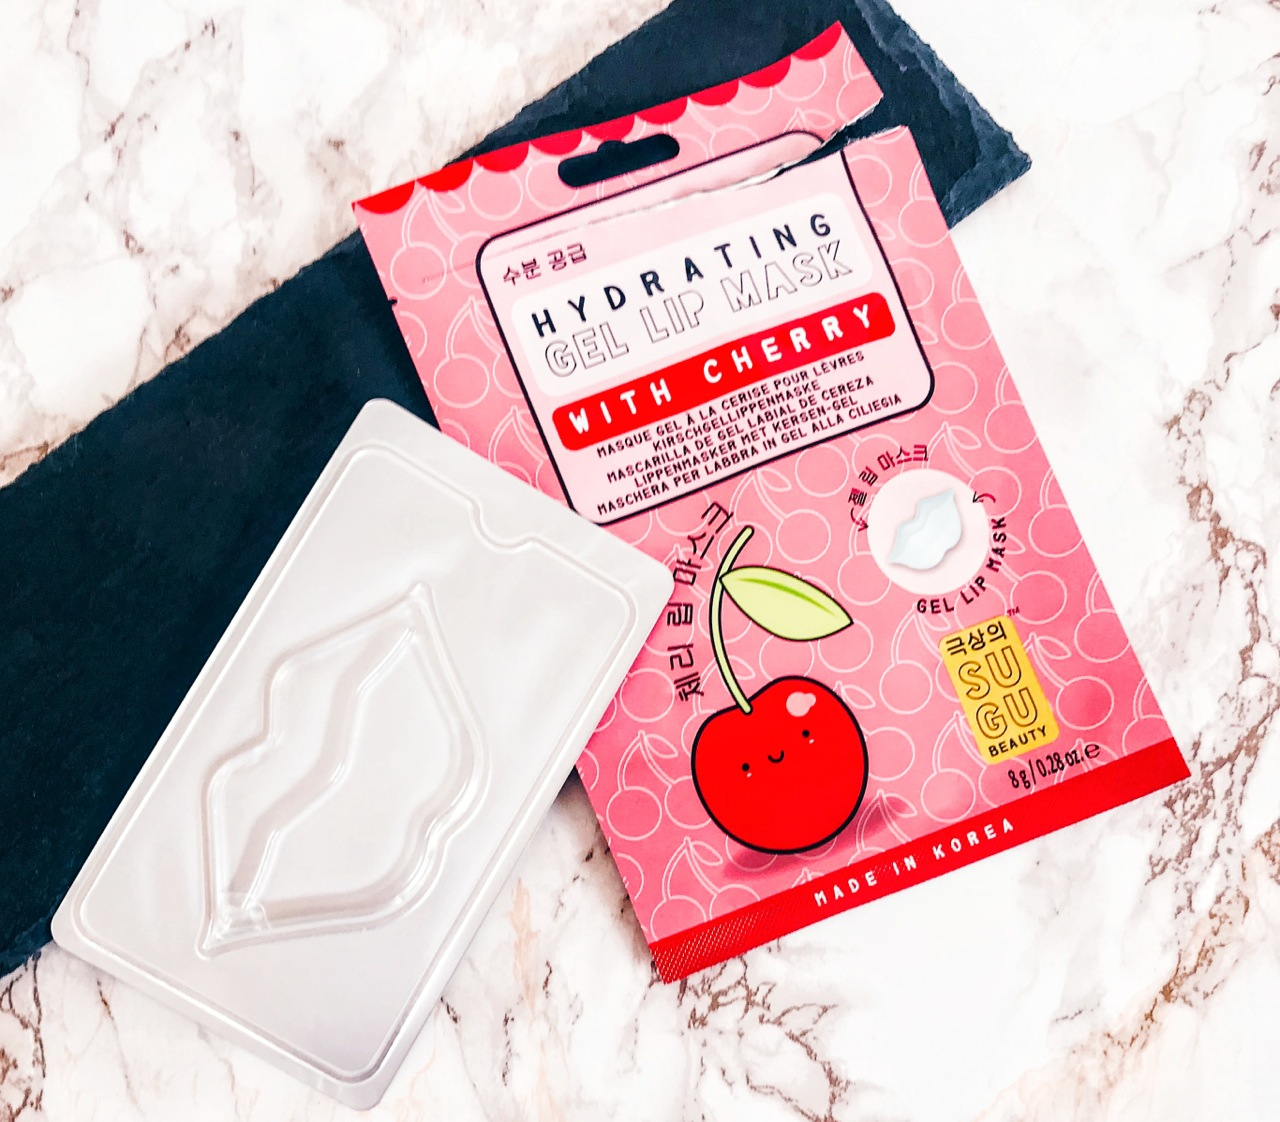 Sugu Beauty Hydrating Gel Lip Mask Review